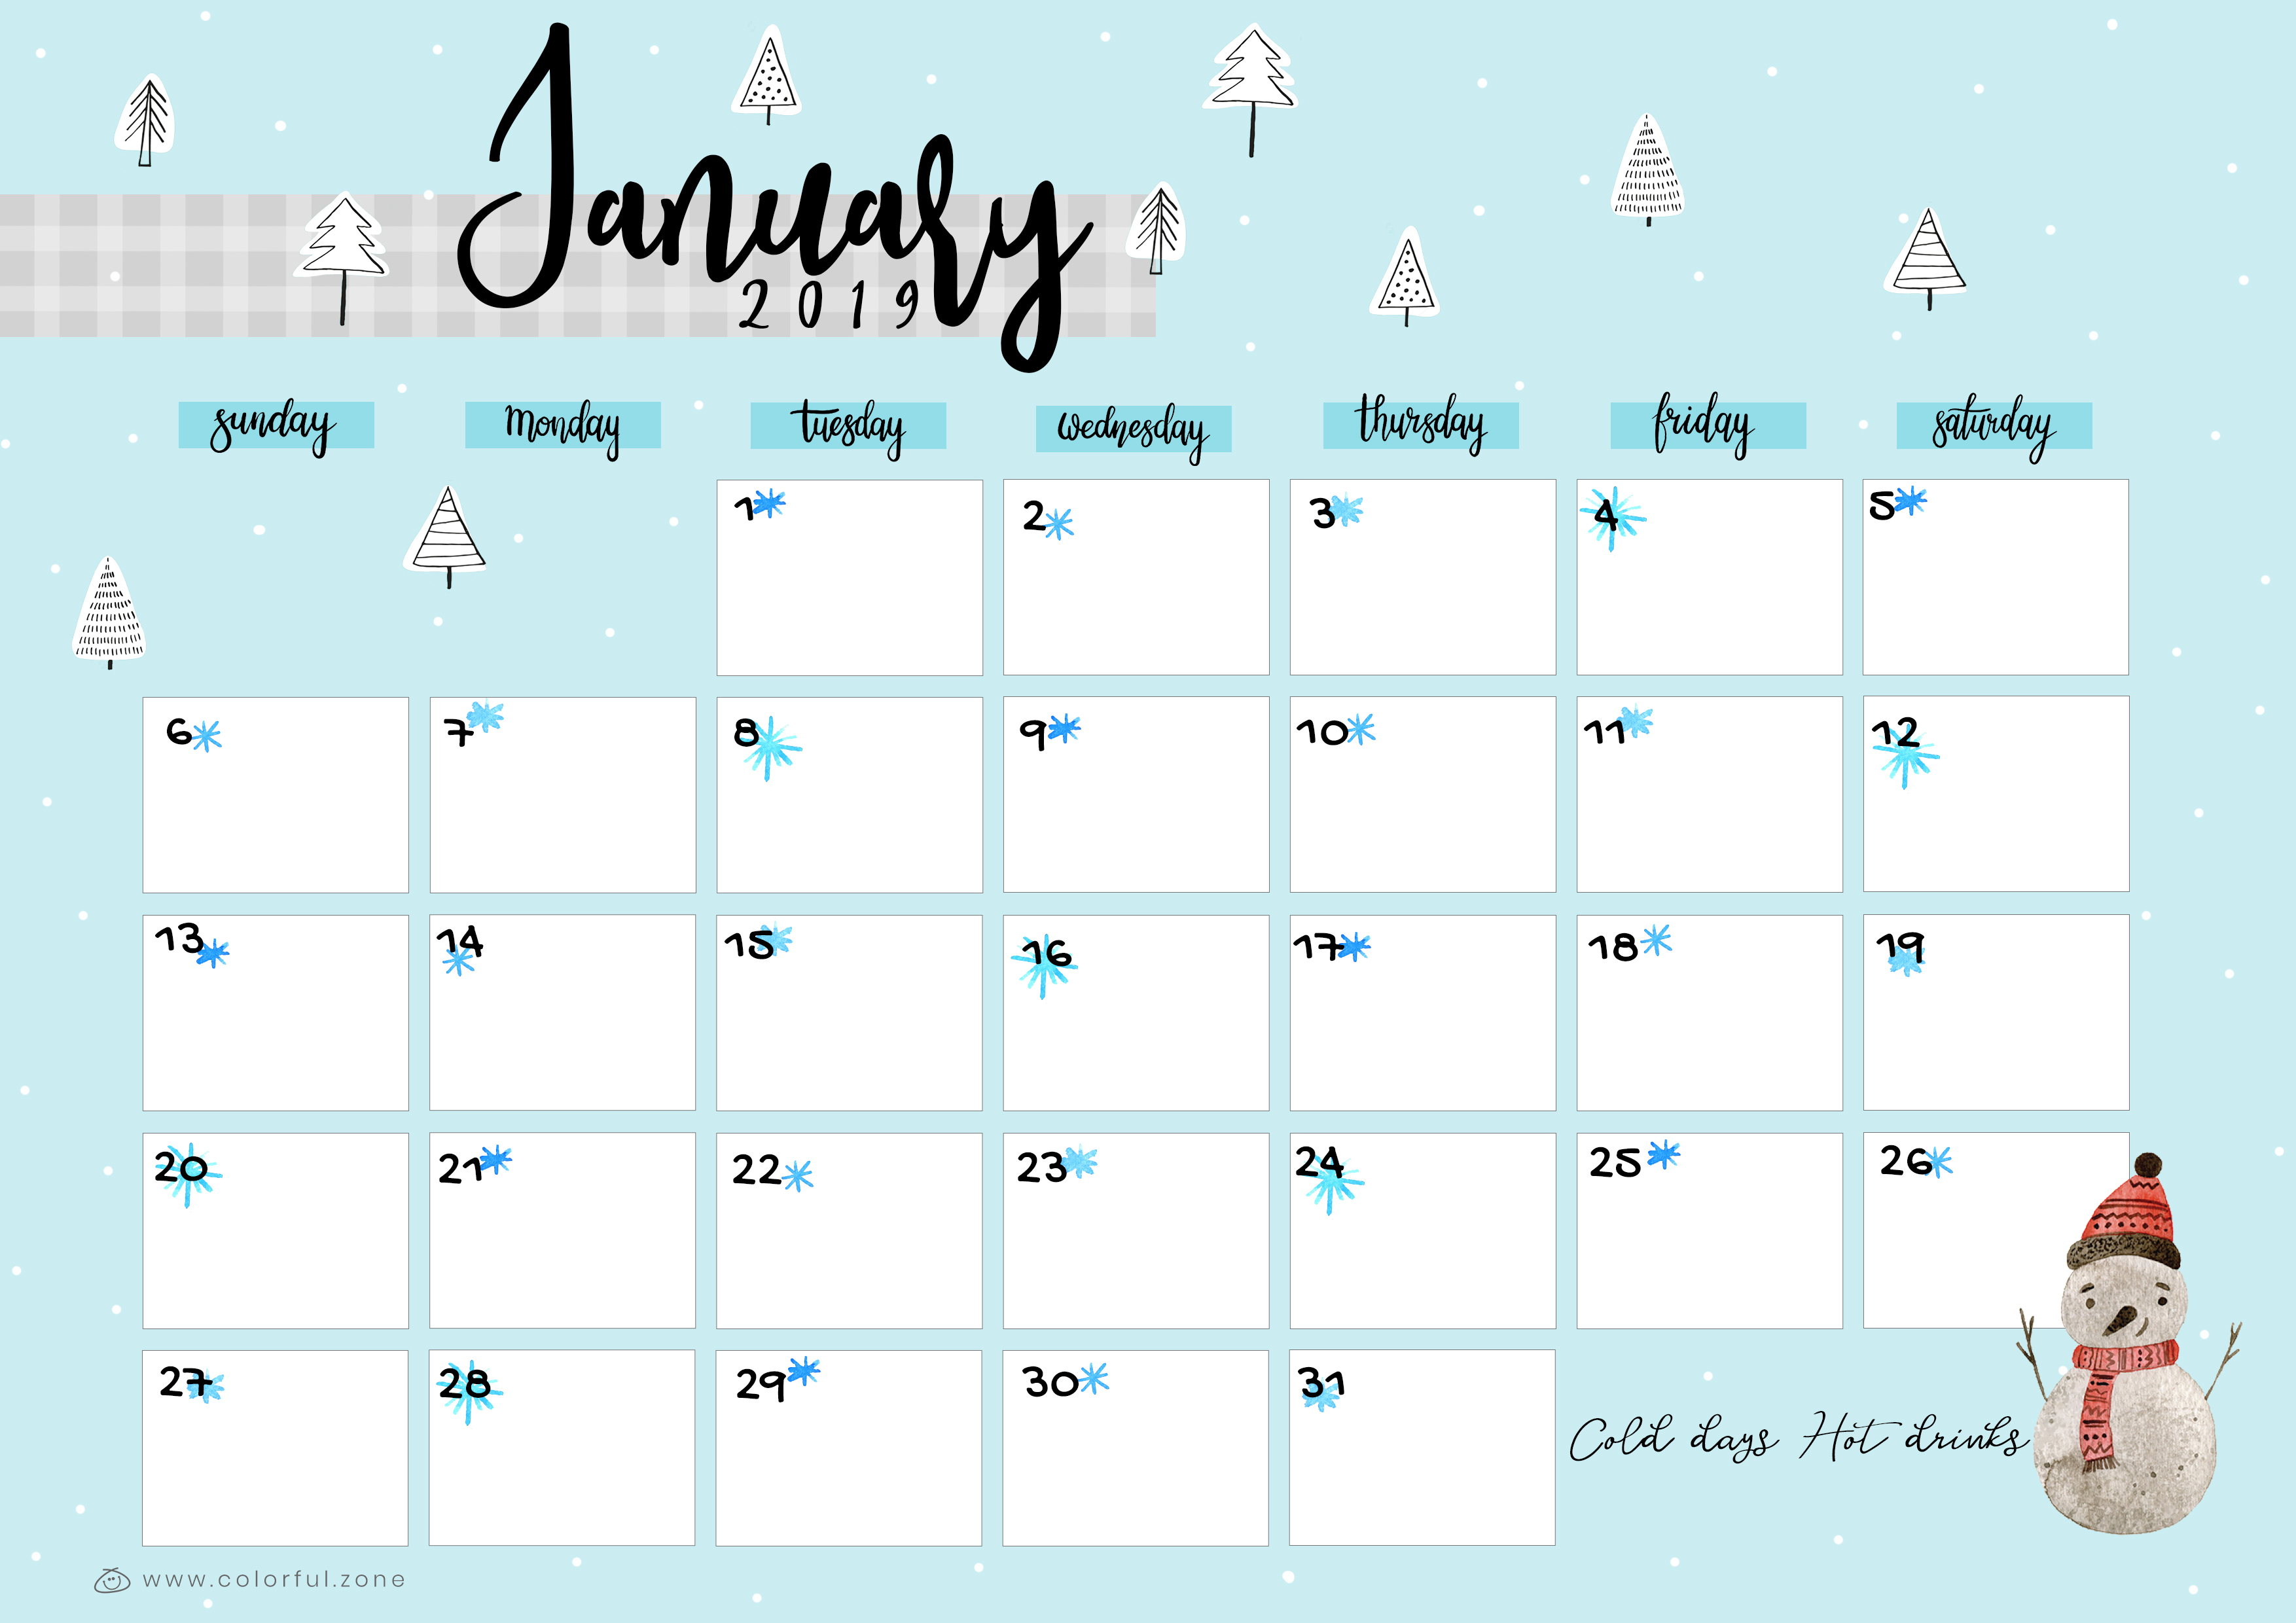 Colorful January 2019 Calendar Free Printable Colorful Calendar 2019 | Colorful Zone